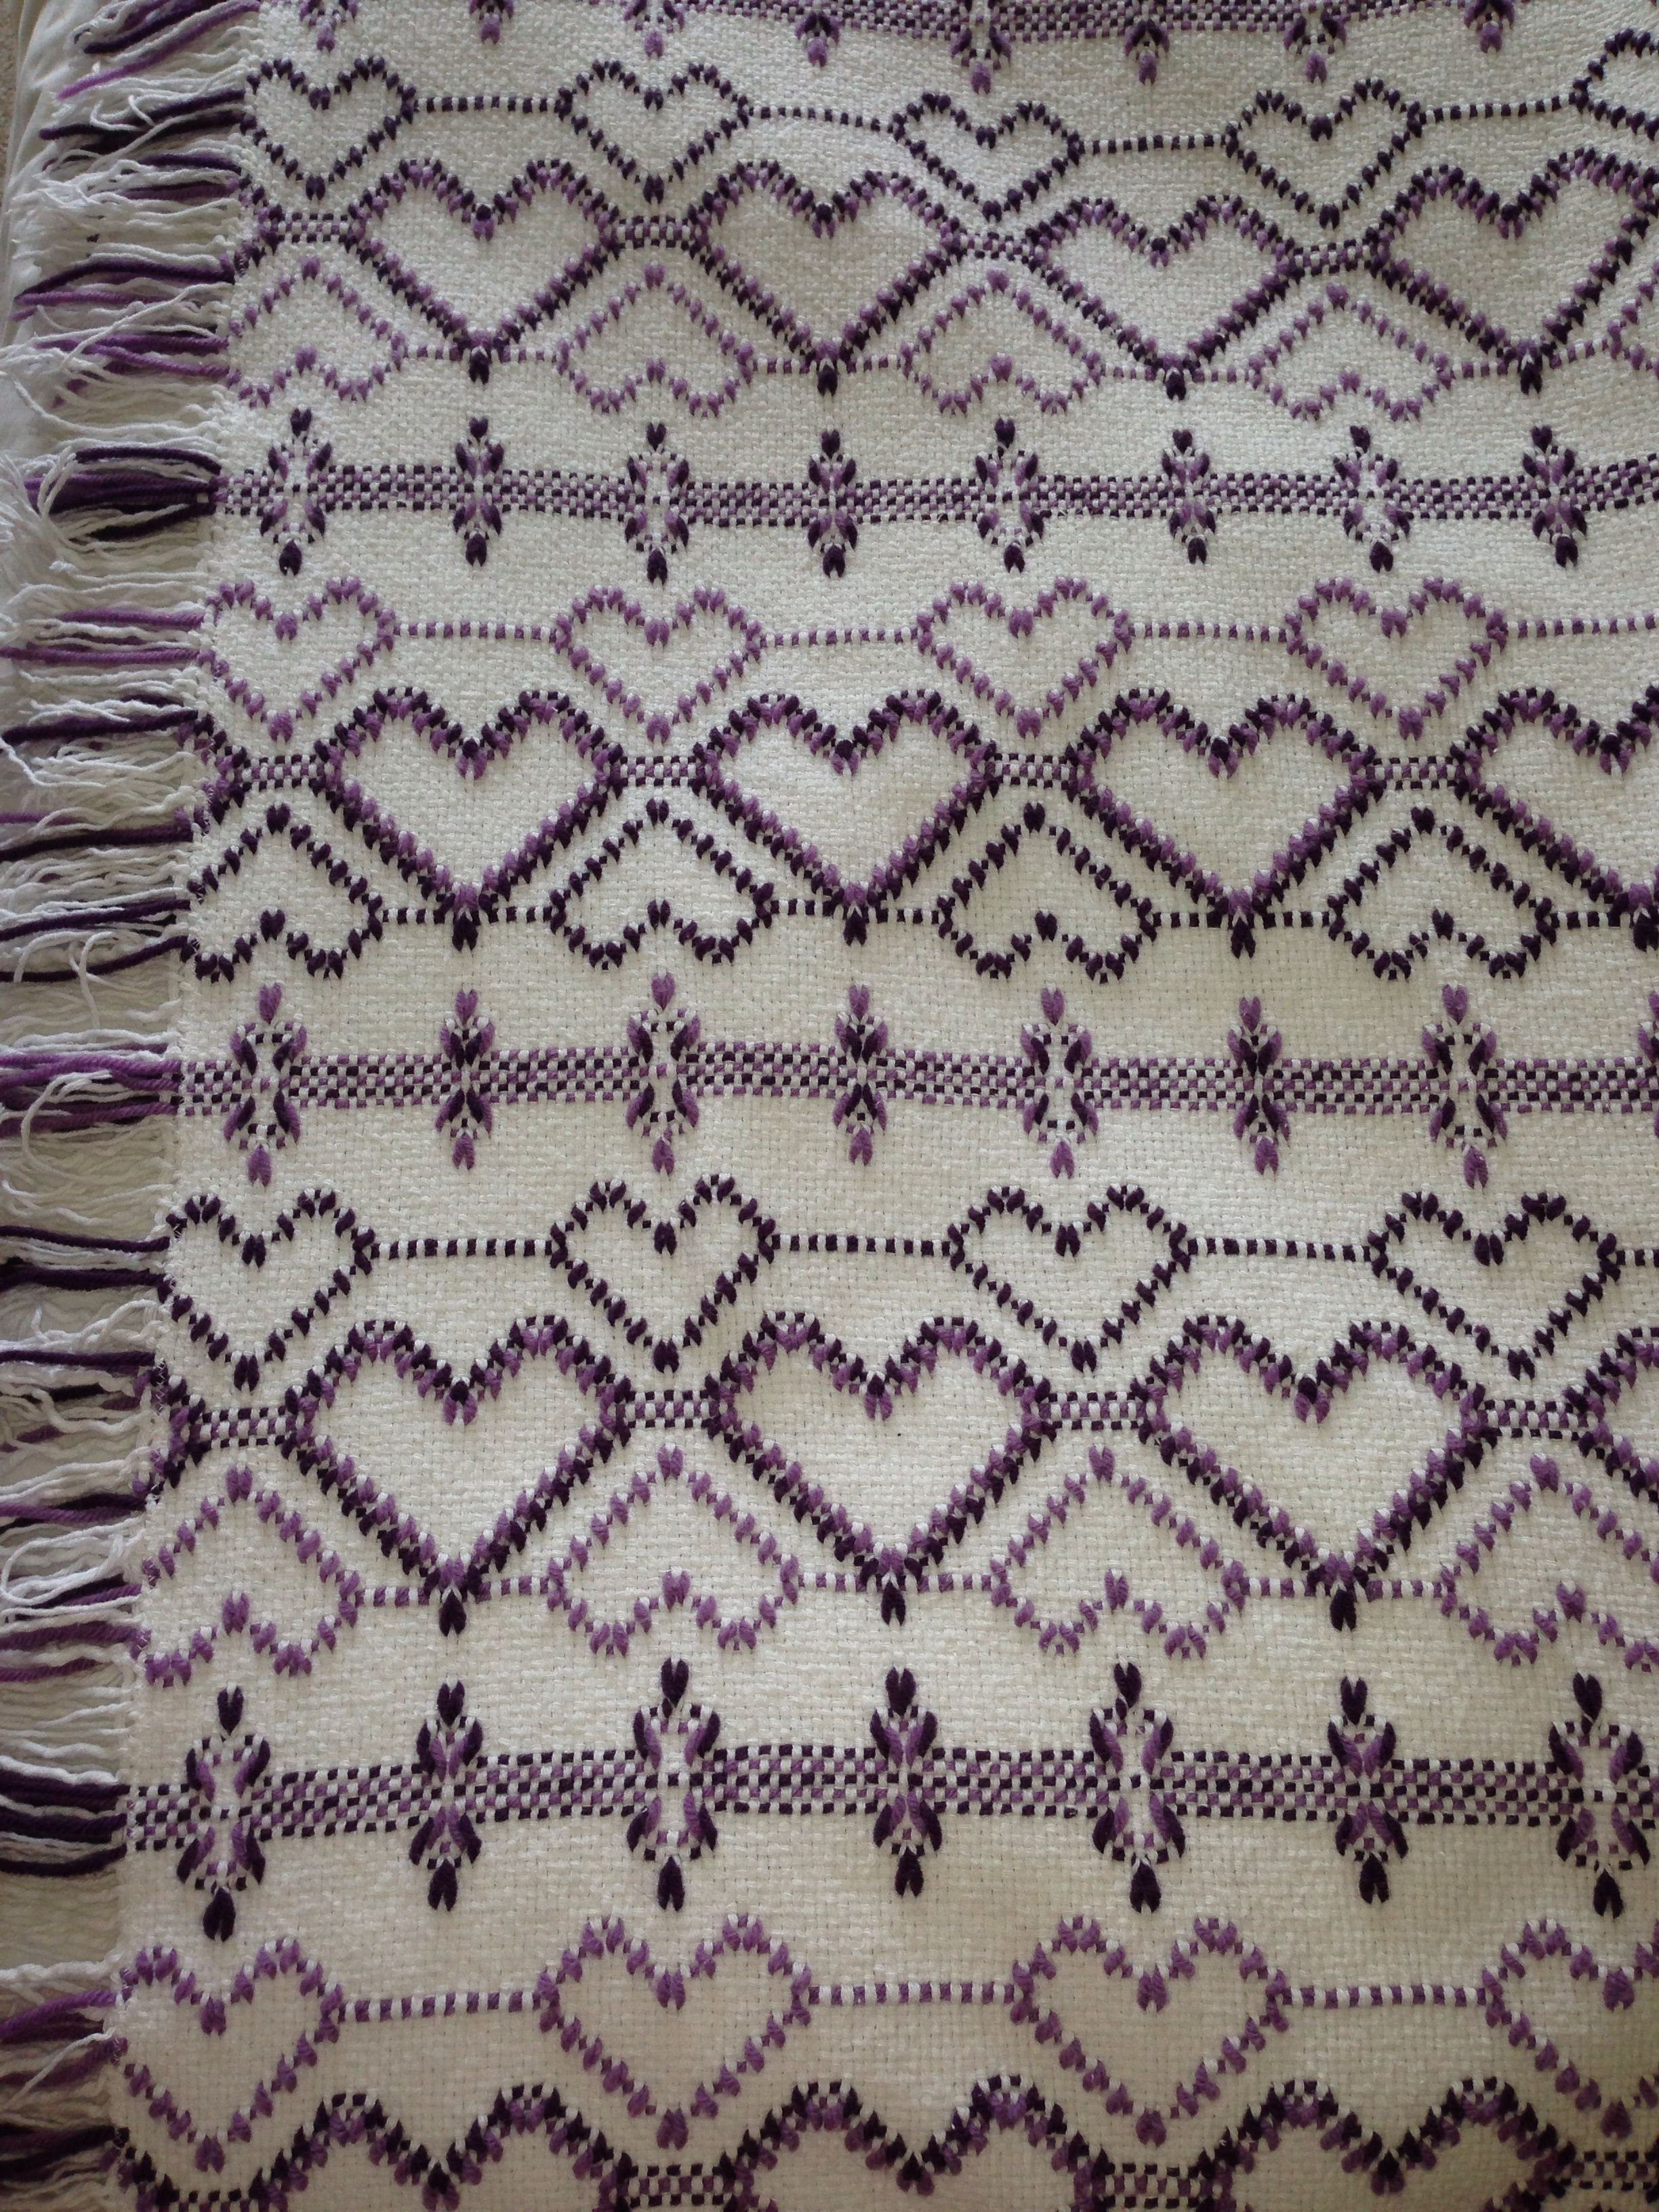 Oh oh I am in trouble . I think I found a new craft to try. Swedish Weaving